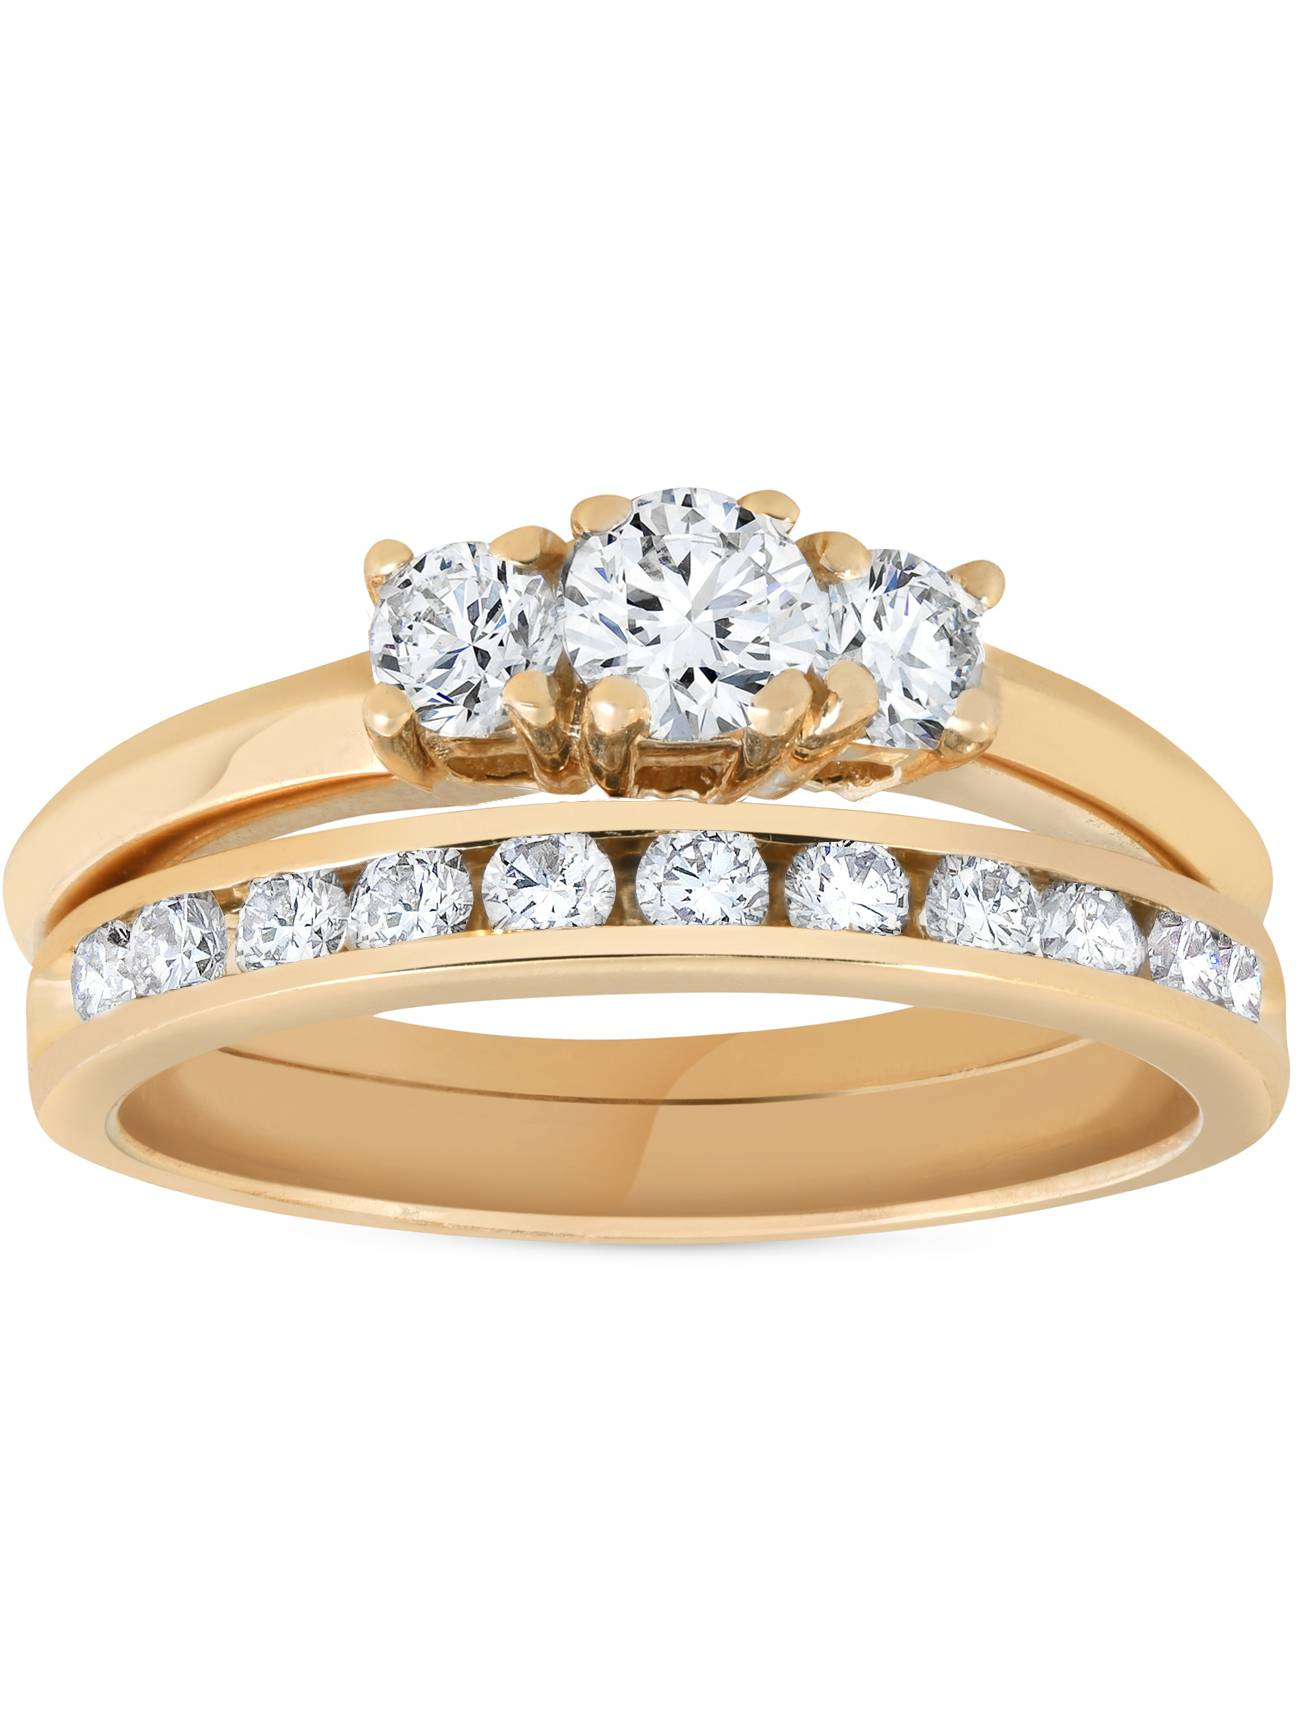 14k Yellow Gold 1ct Diamond Engagement Wedding Ring Set 3Stone Channel Set Round by Pompeii3